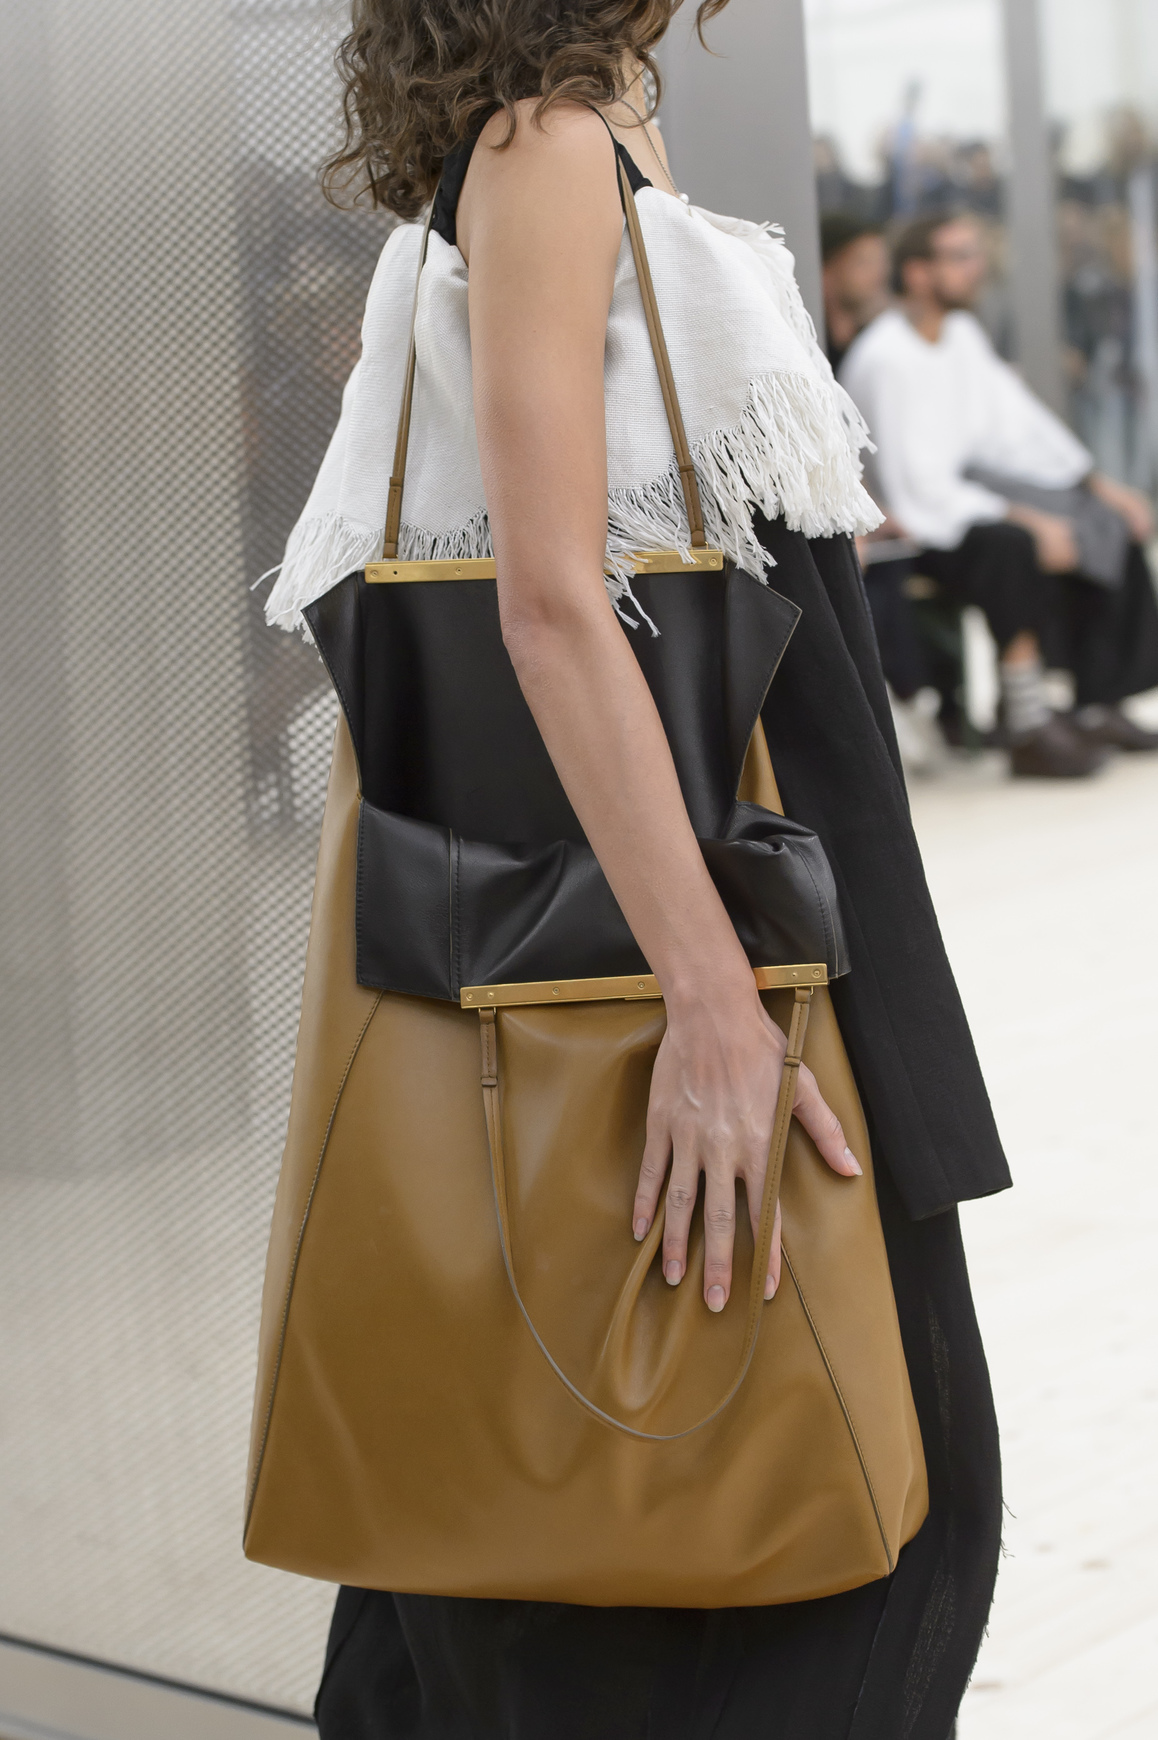 Spring 2017 Trend Report: From Supersize to Mini, the Hottest Bags to Carry Now